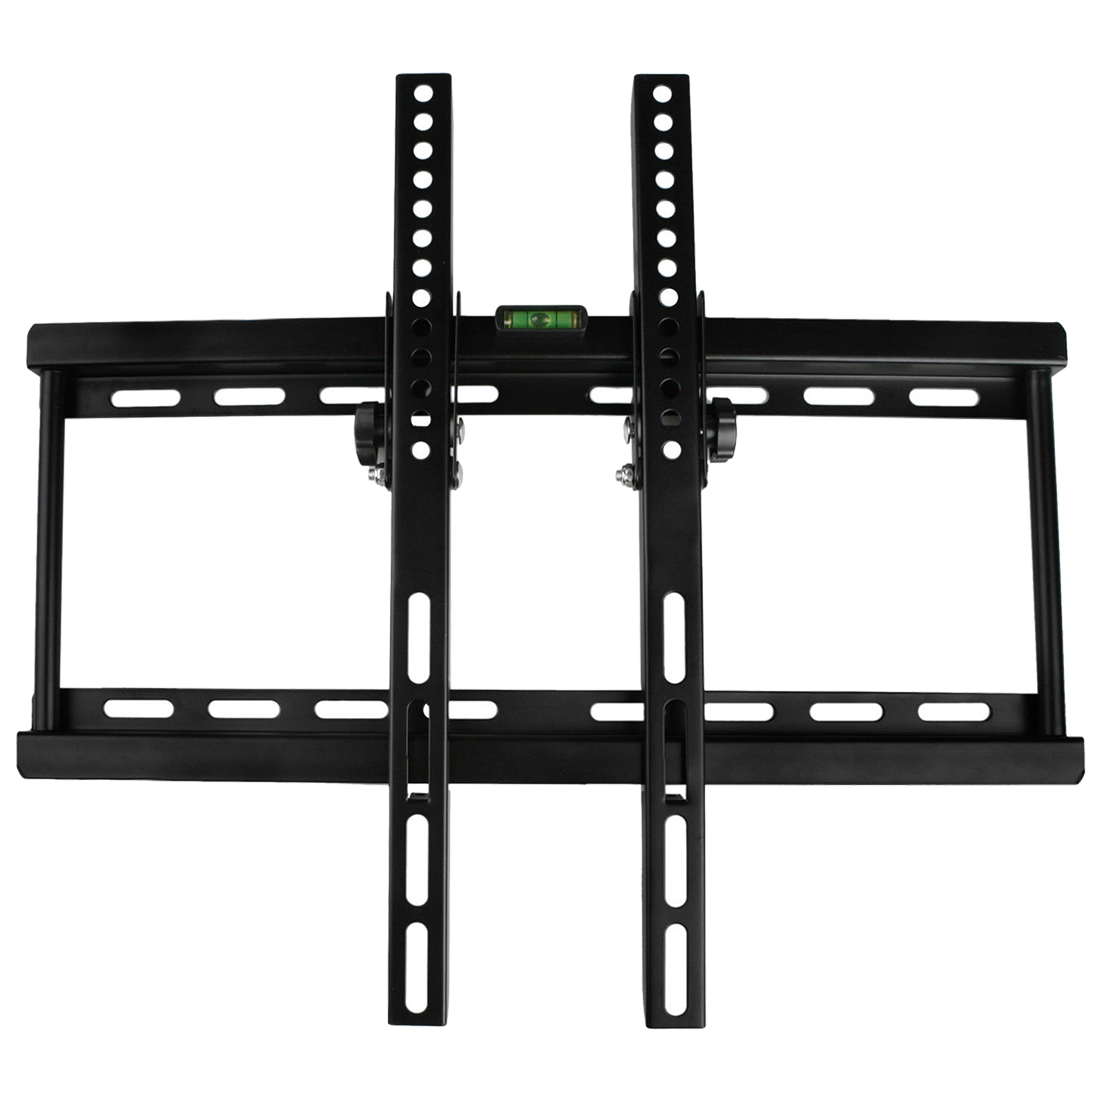 Flat Slim Tv Wall Mount Bracket 23 28 30 32 40 42 48 50 55 Inch Led Lcd Plasma 100% High Quality Materials Bathroom Hardware